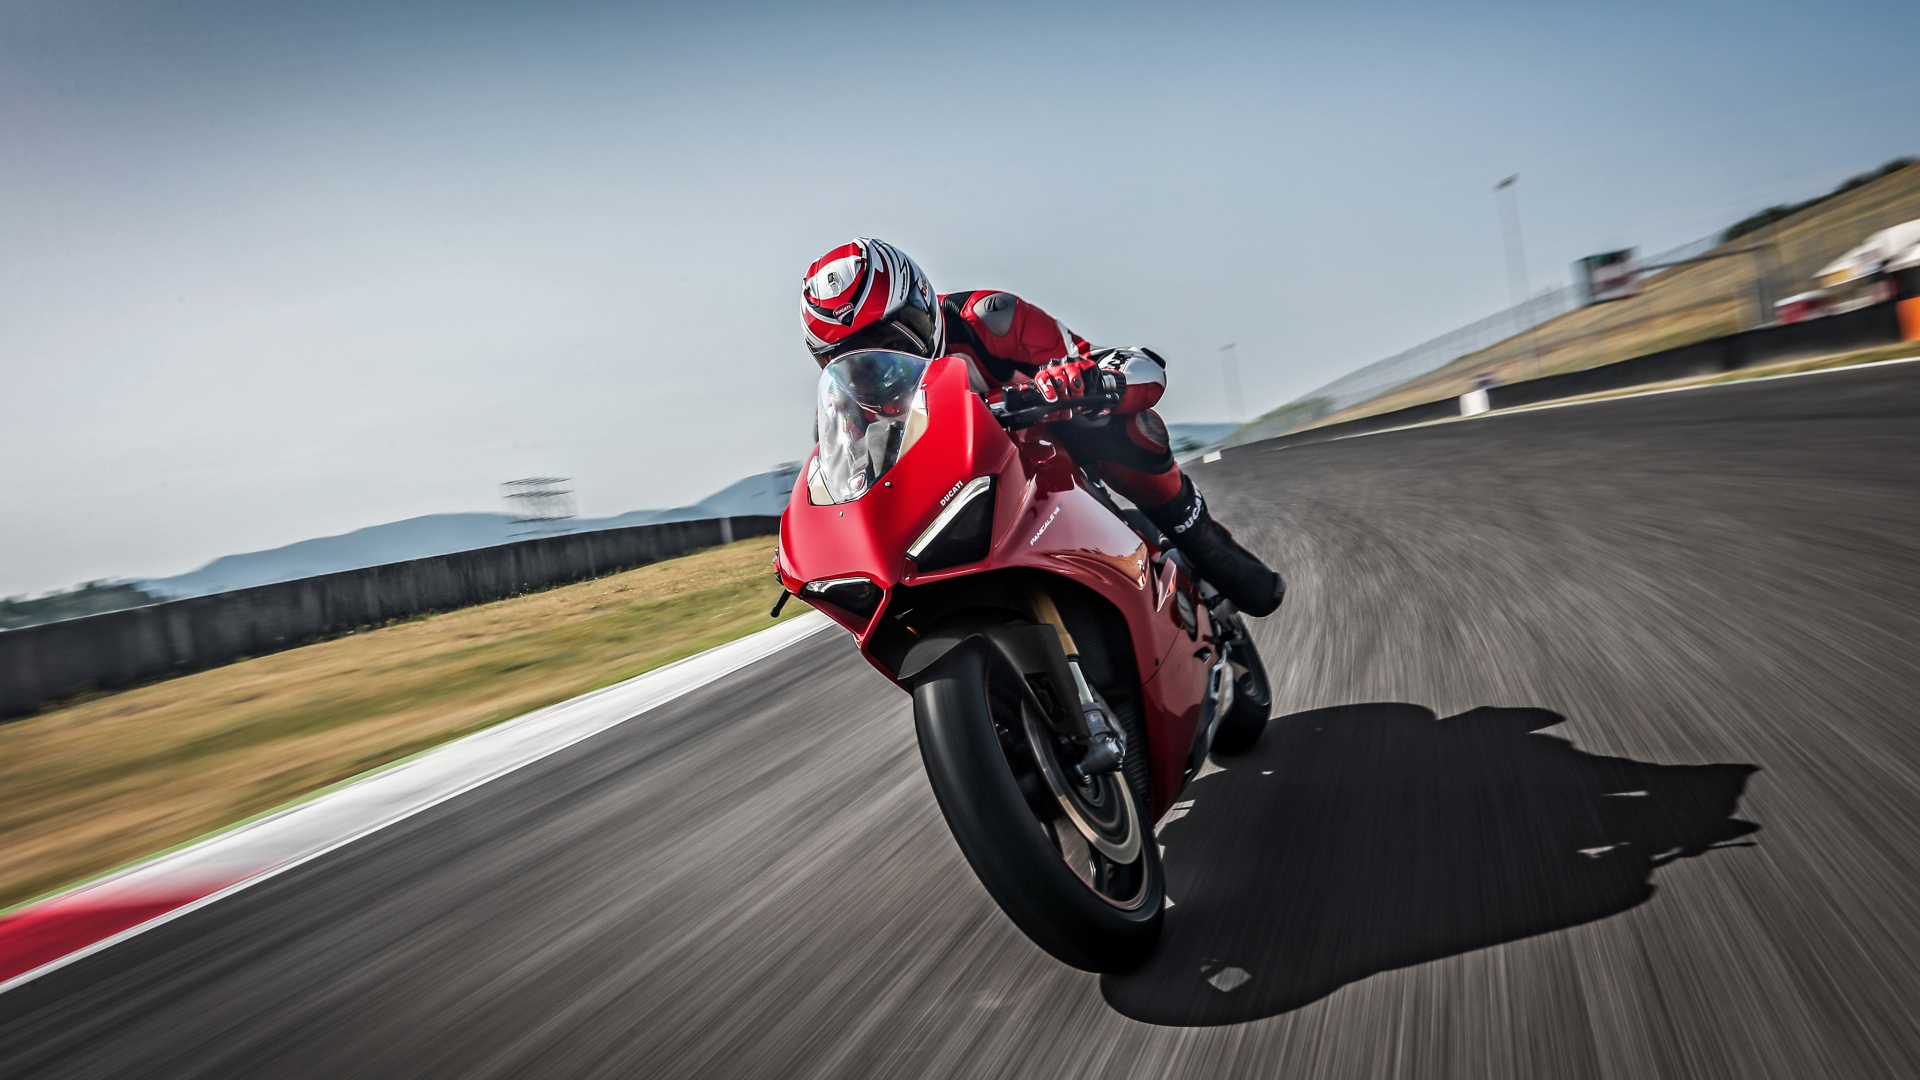 Ducati panigale v4, speciale, 2018, racing bike, 1920x1080 wallpaper